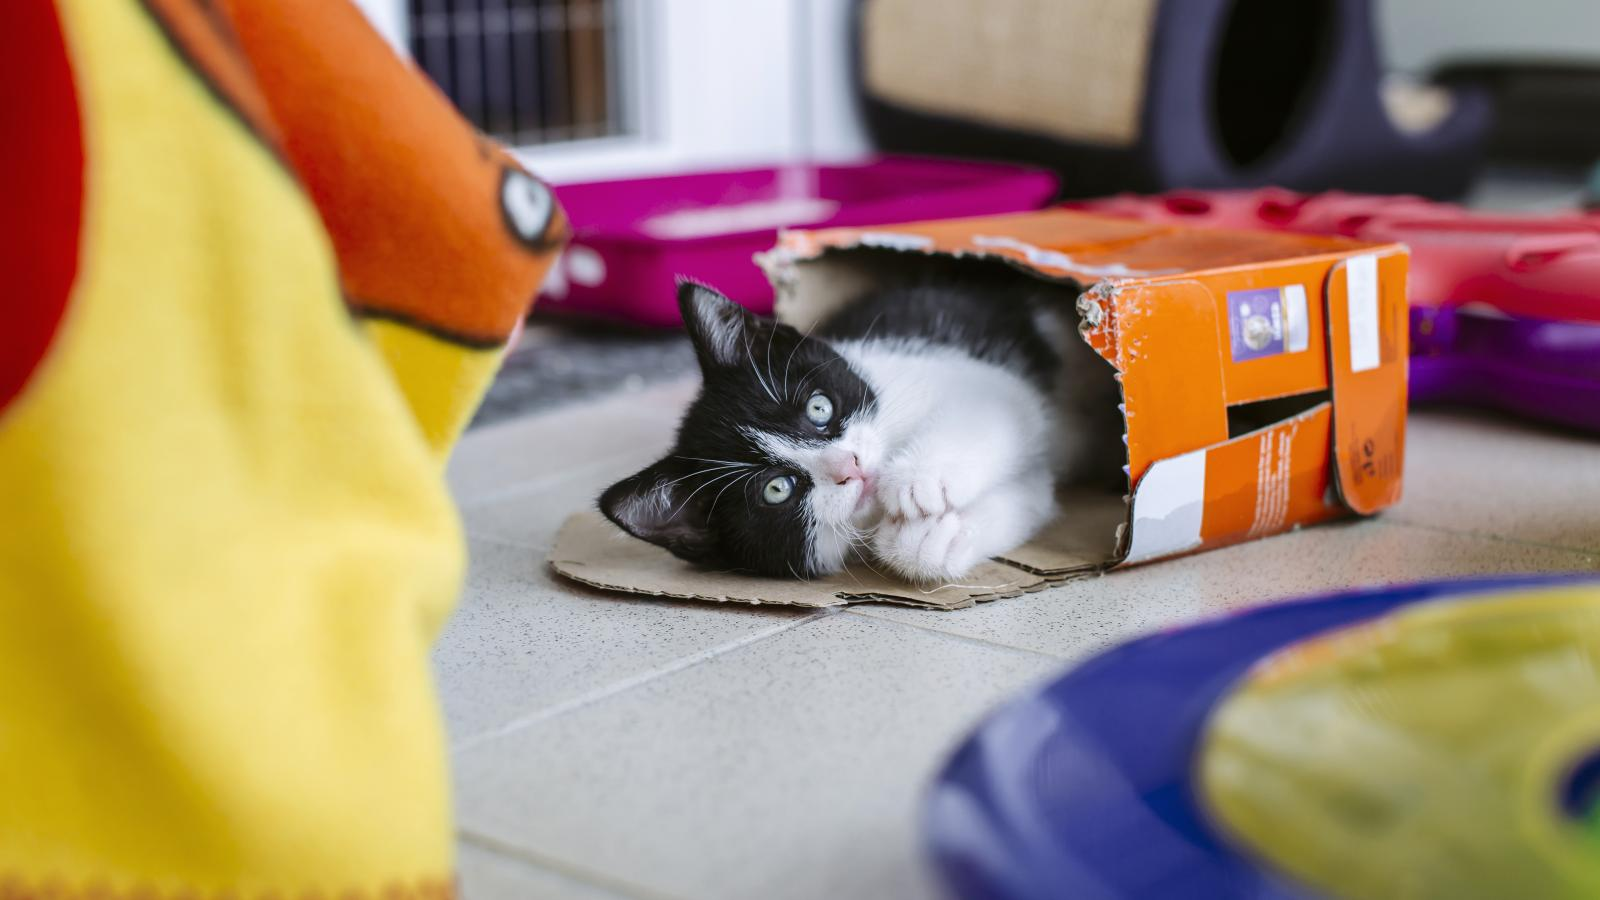 Paralysed kitten takes first steps